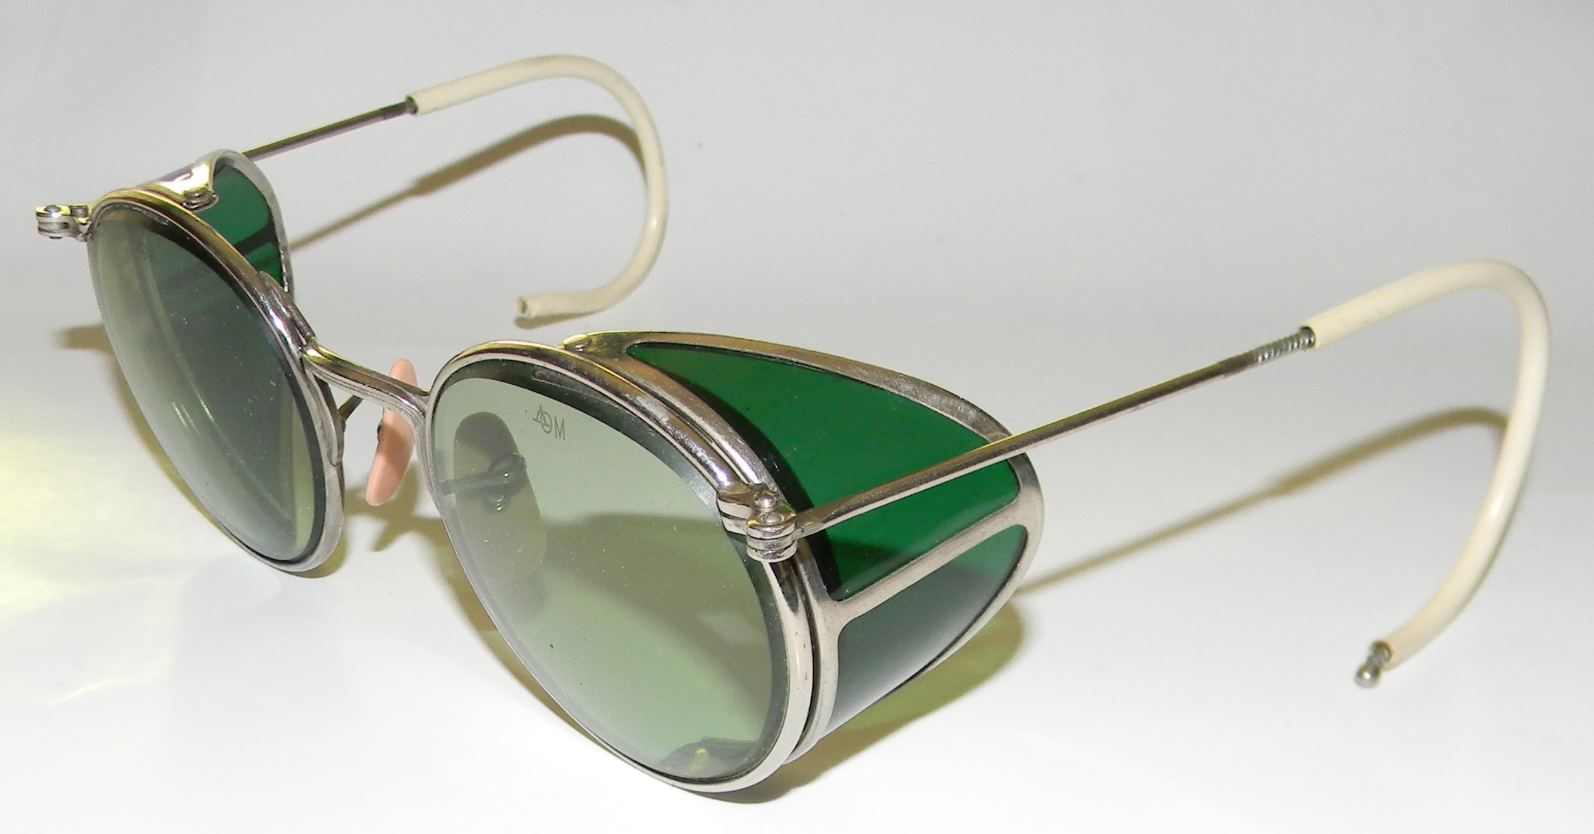 WWII era A/O safety Goggles